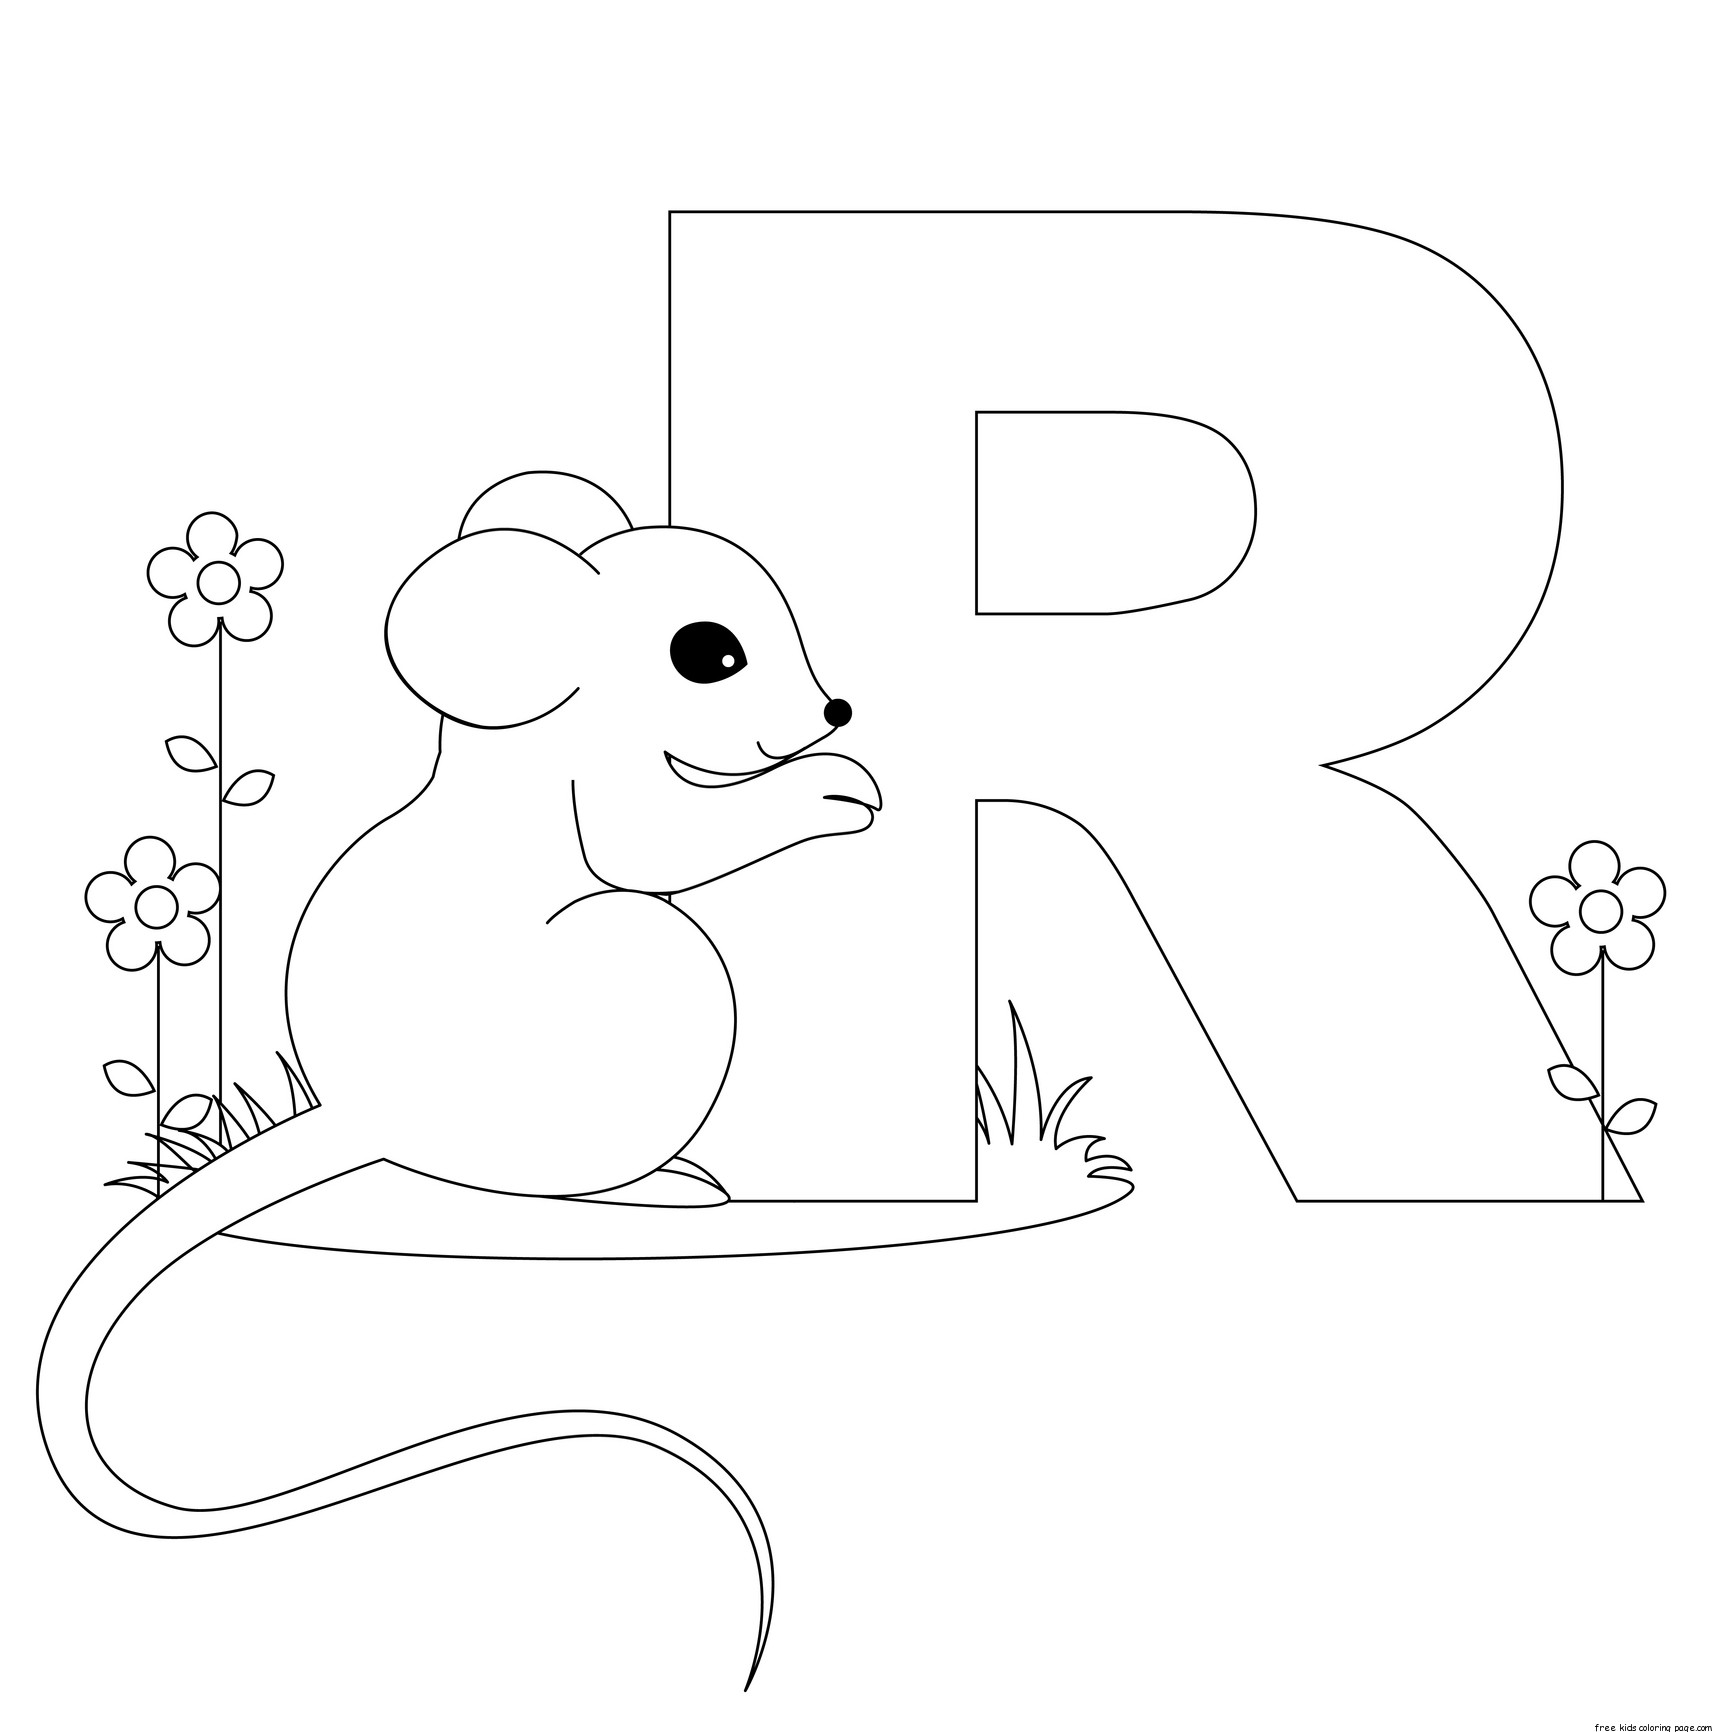 R Coloring Pages Preschool At Getdrawings Com Free For Personal